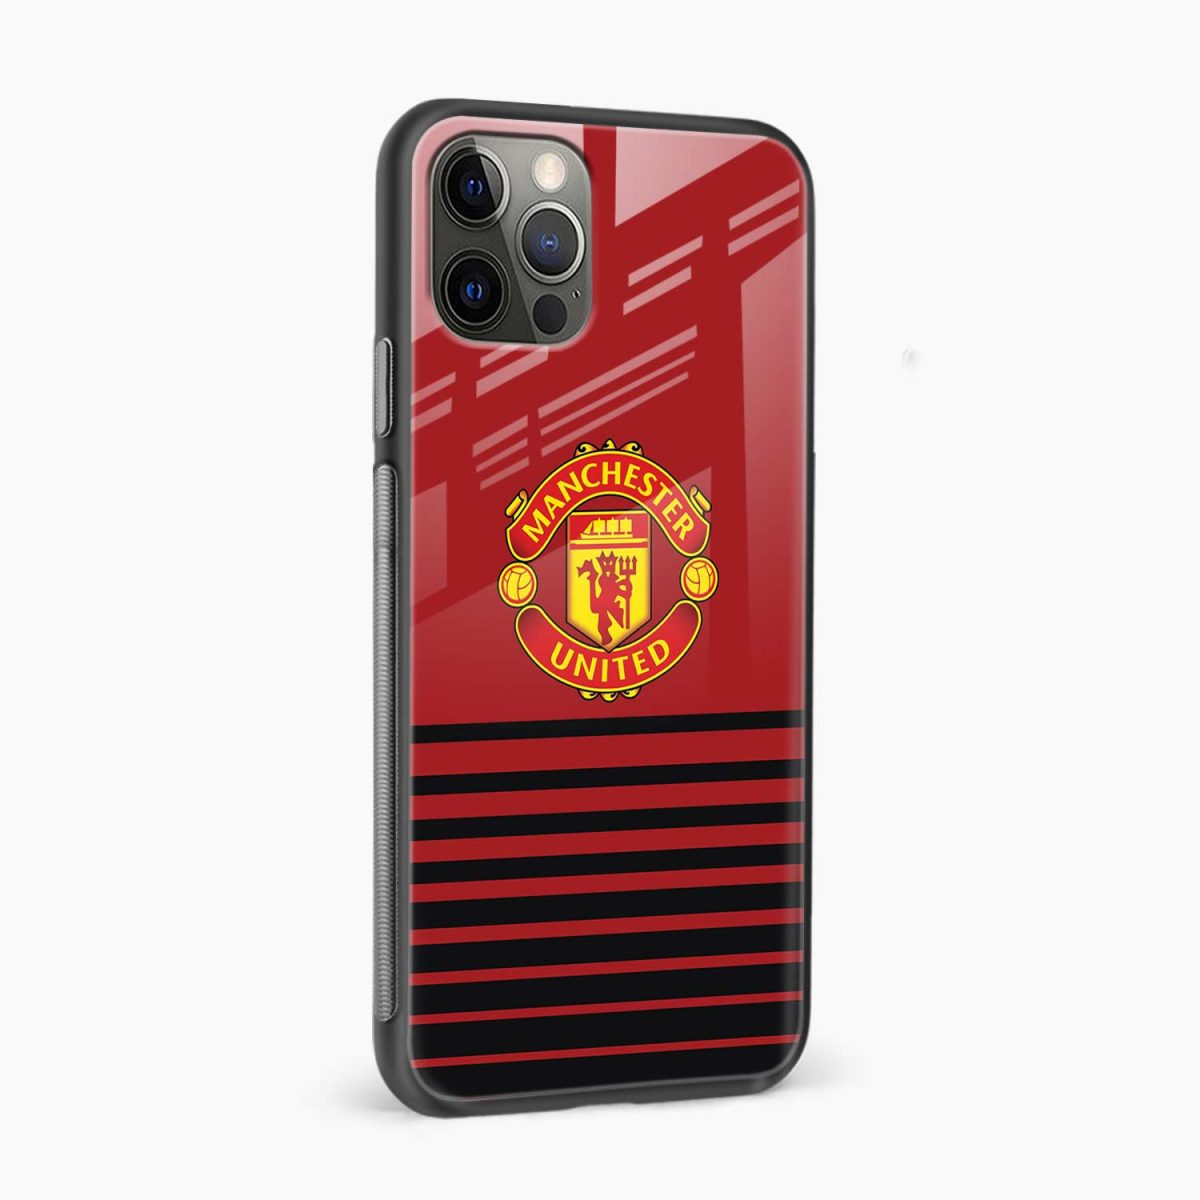 manchester united iphone pro back cover side view